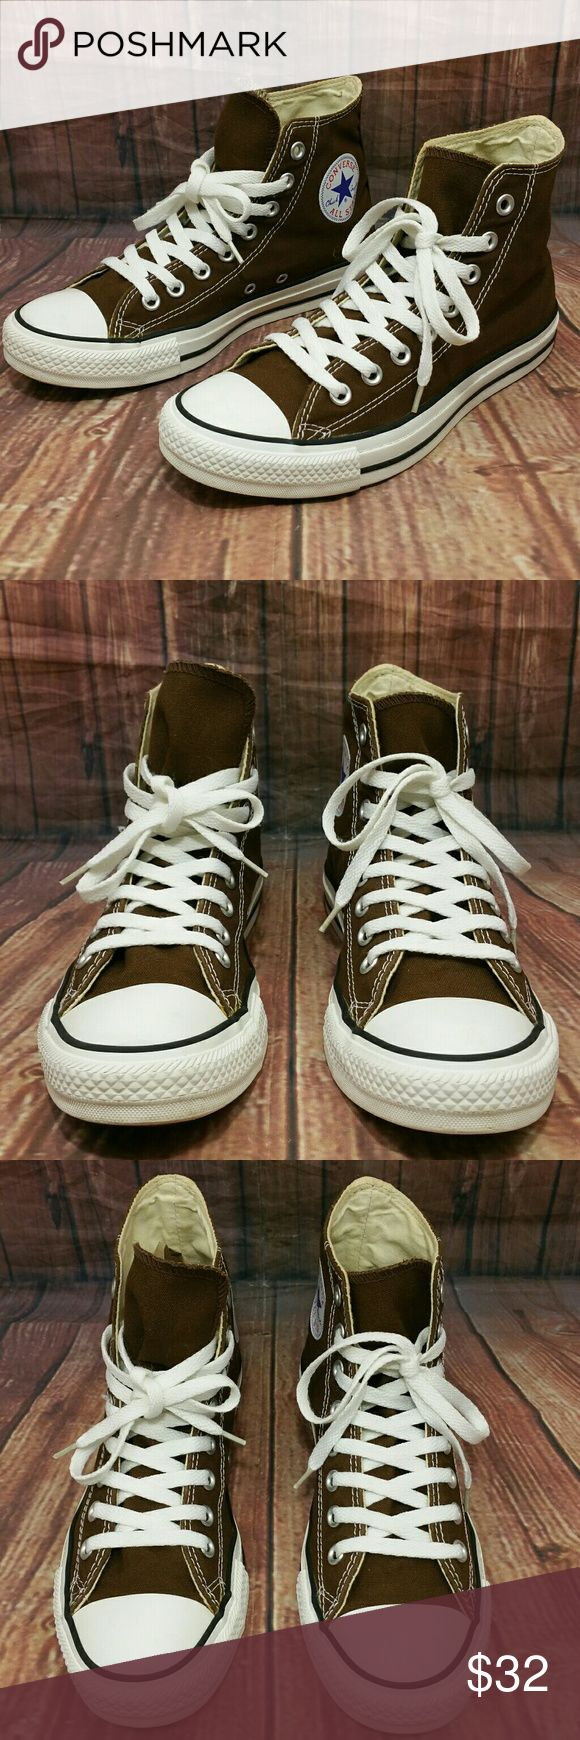 CONVERSE CT All Star High Top Brown Canvas Shoes Excellent Pre-owned Conditions Converse Chuck Taylor all Star in Brown.  Women's Size 9 Men's size 7  Please see pics for better details Actual pictures of the shoes on sale Converse Shoes Sneakers